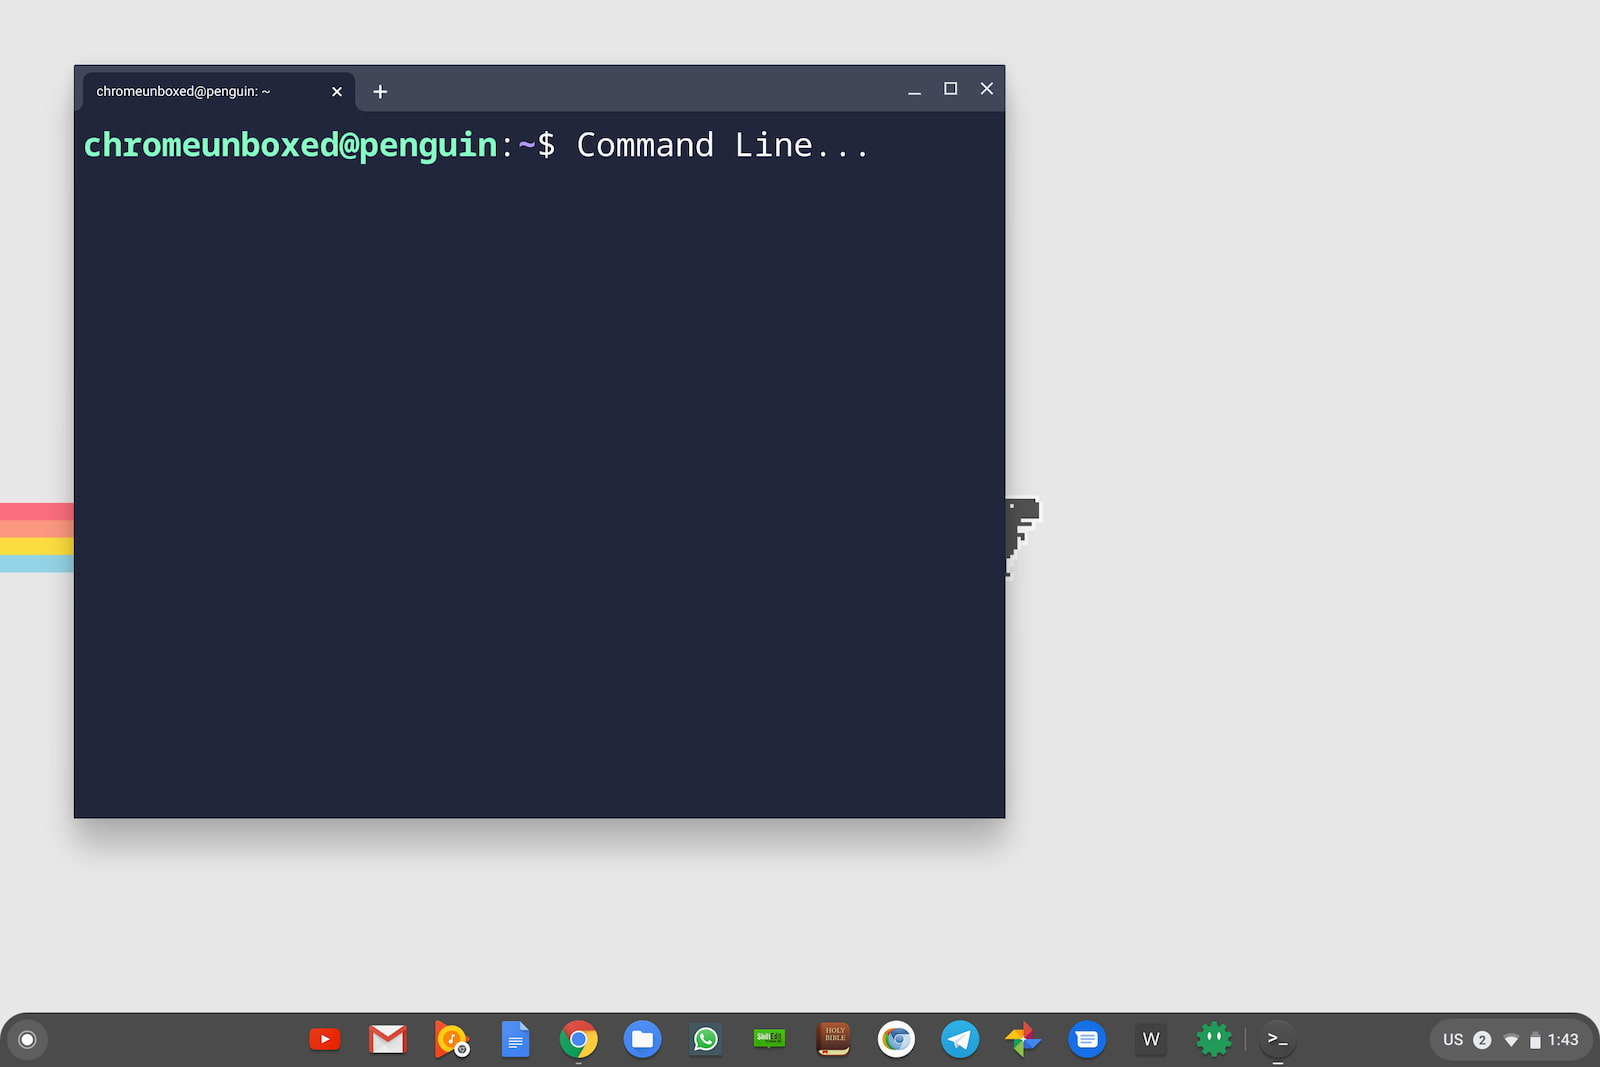 5 must-have terminal commands for Linux on your Chromebook